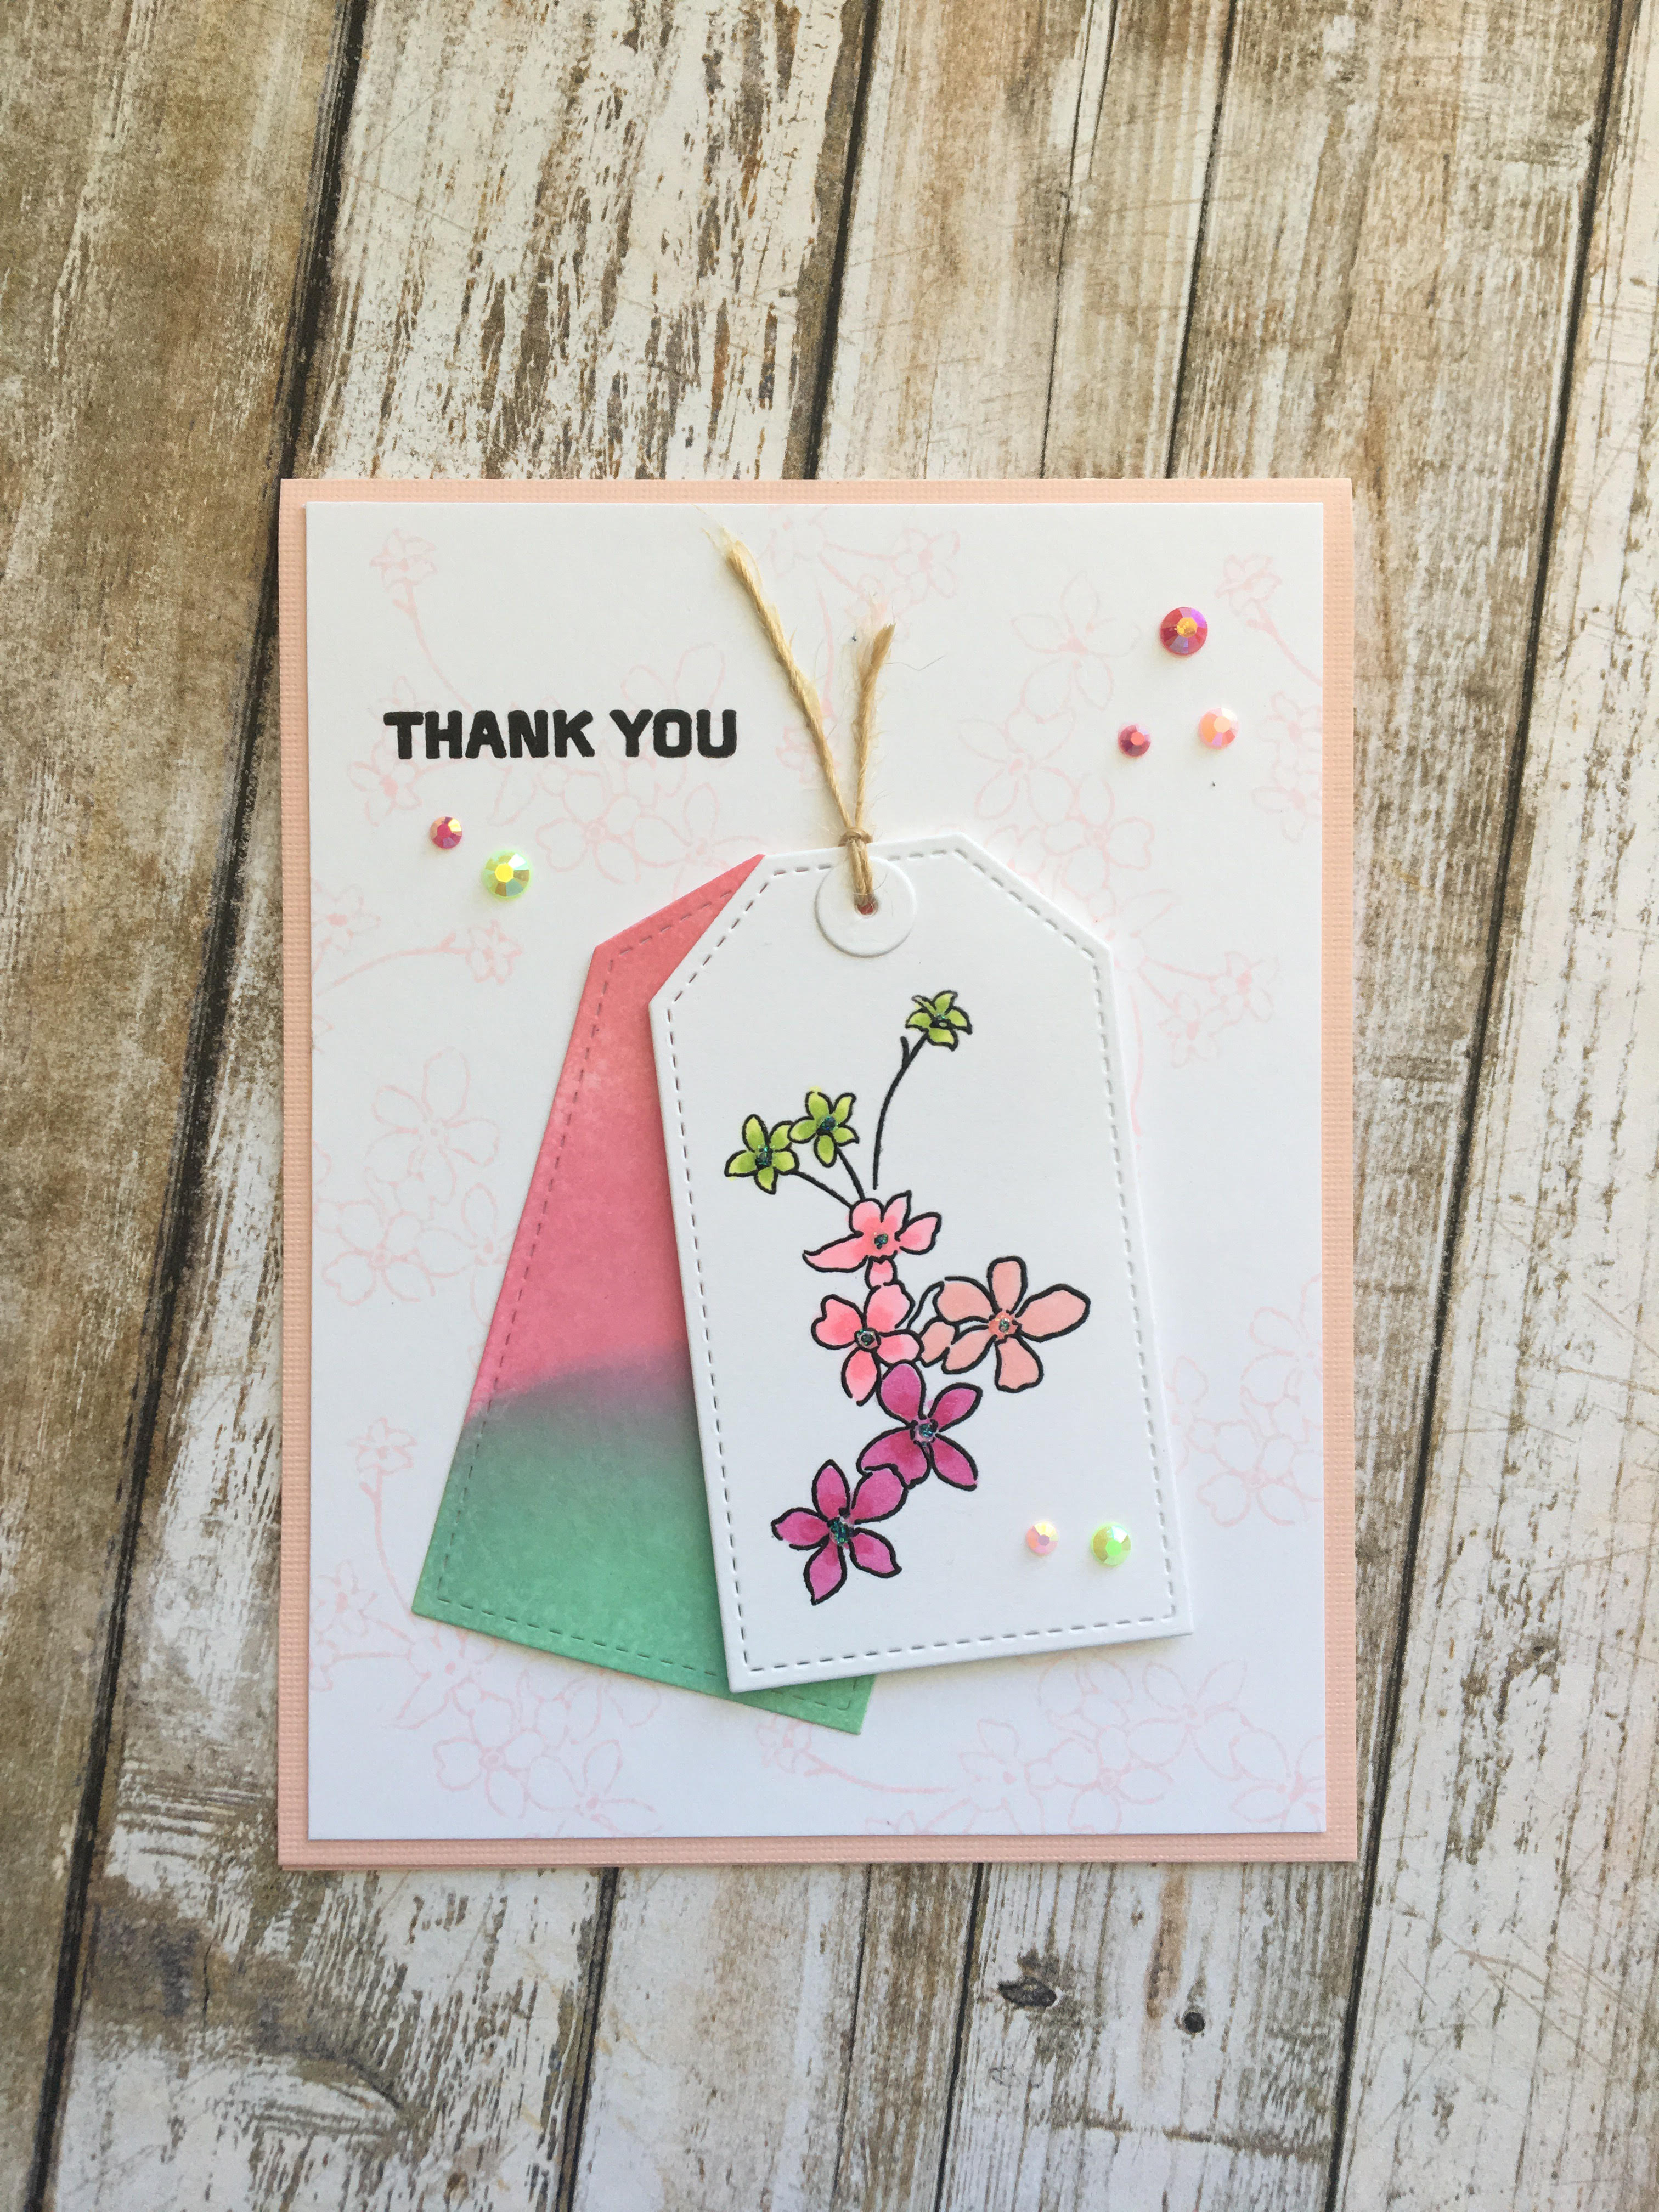 Thank You Teacher Clear Stamp For Handmade Cards /& Tags